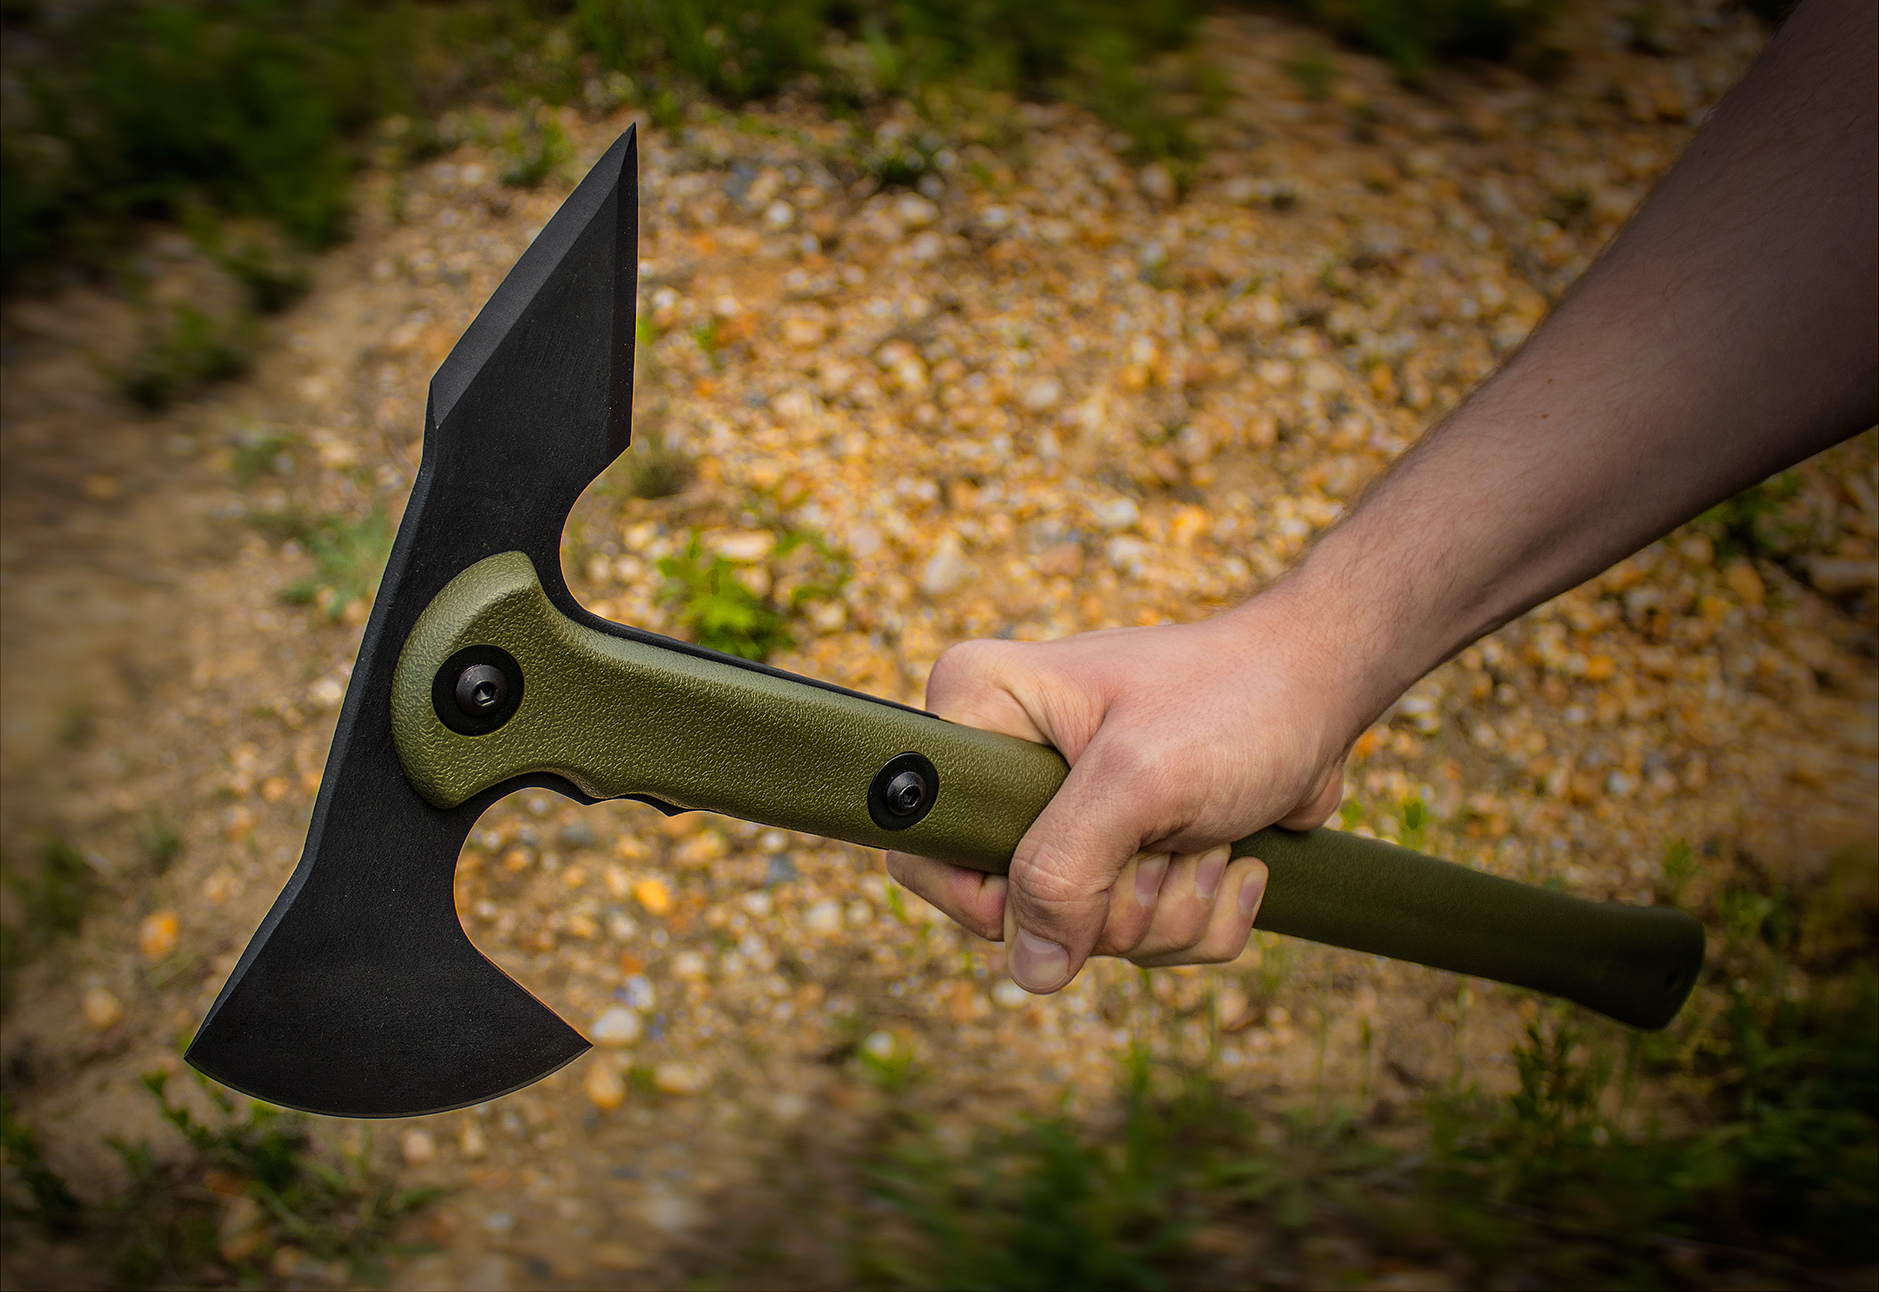 Фото 8 - Топор Trench Hawk OD Green-2 от Cold Steel